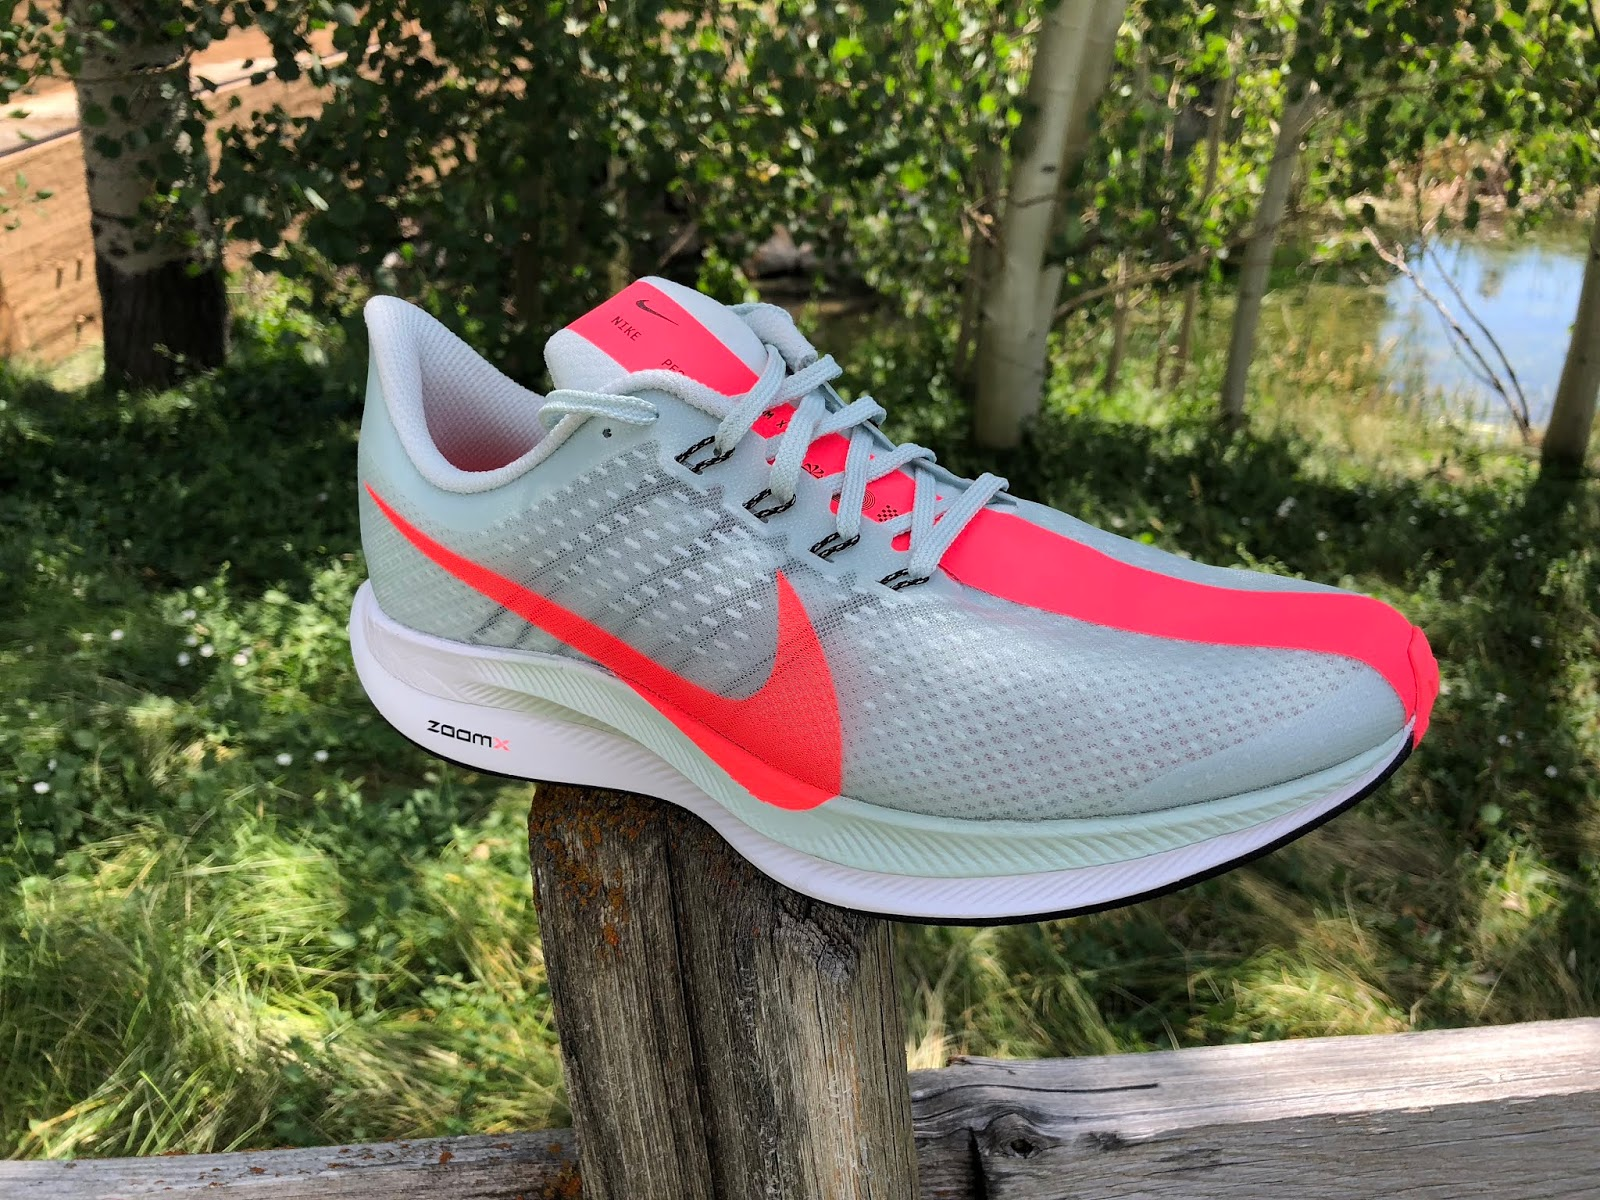 Road Trail Run: Nike Zoom Pegasus Turbo 120 Mile Road Test